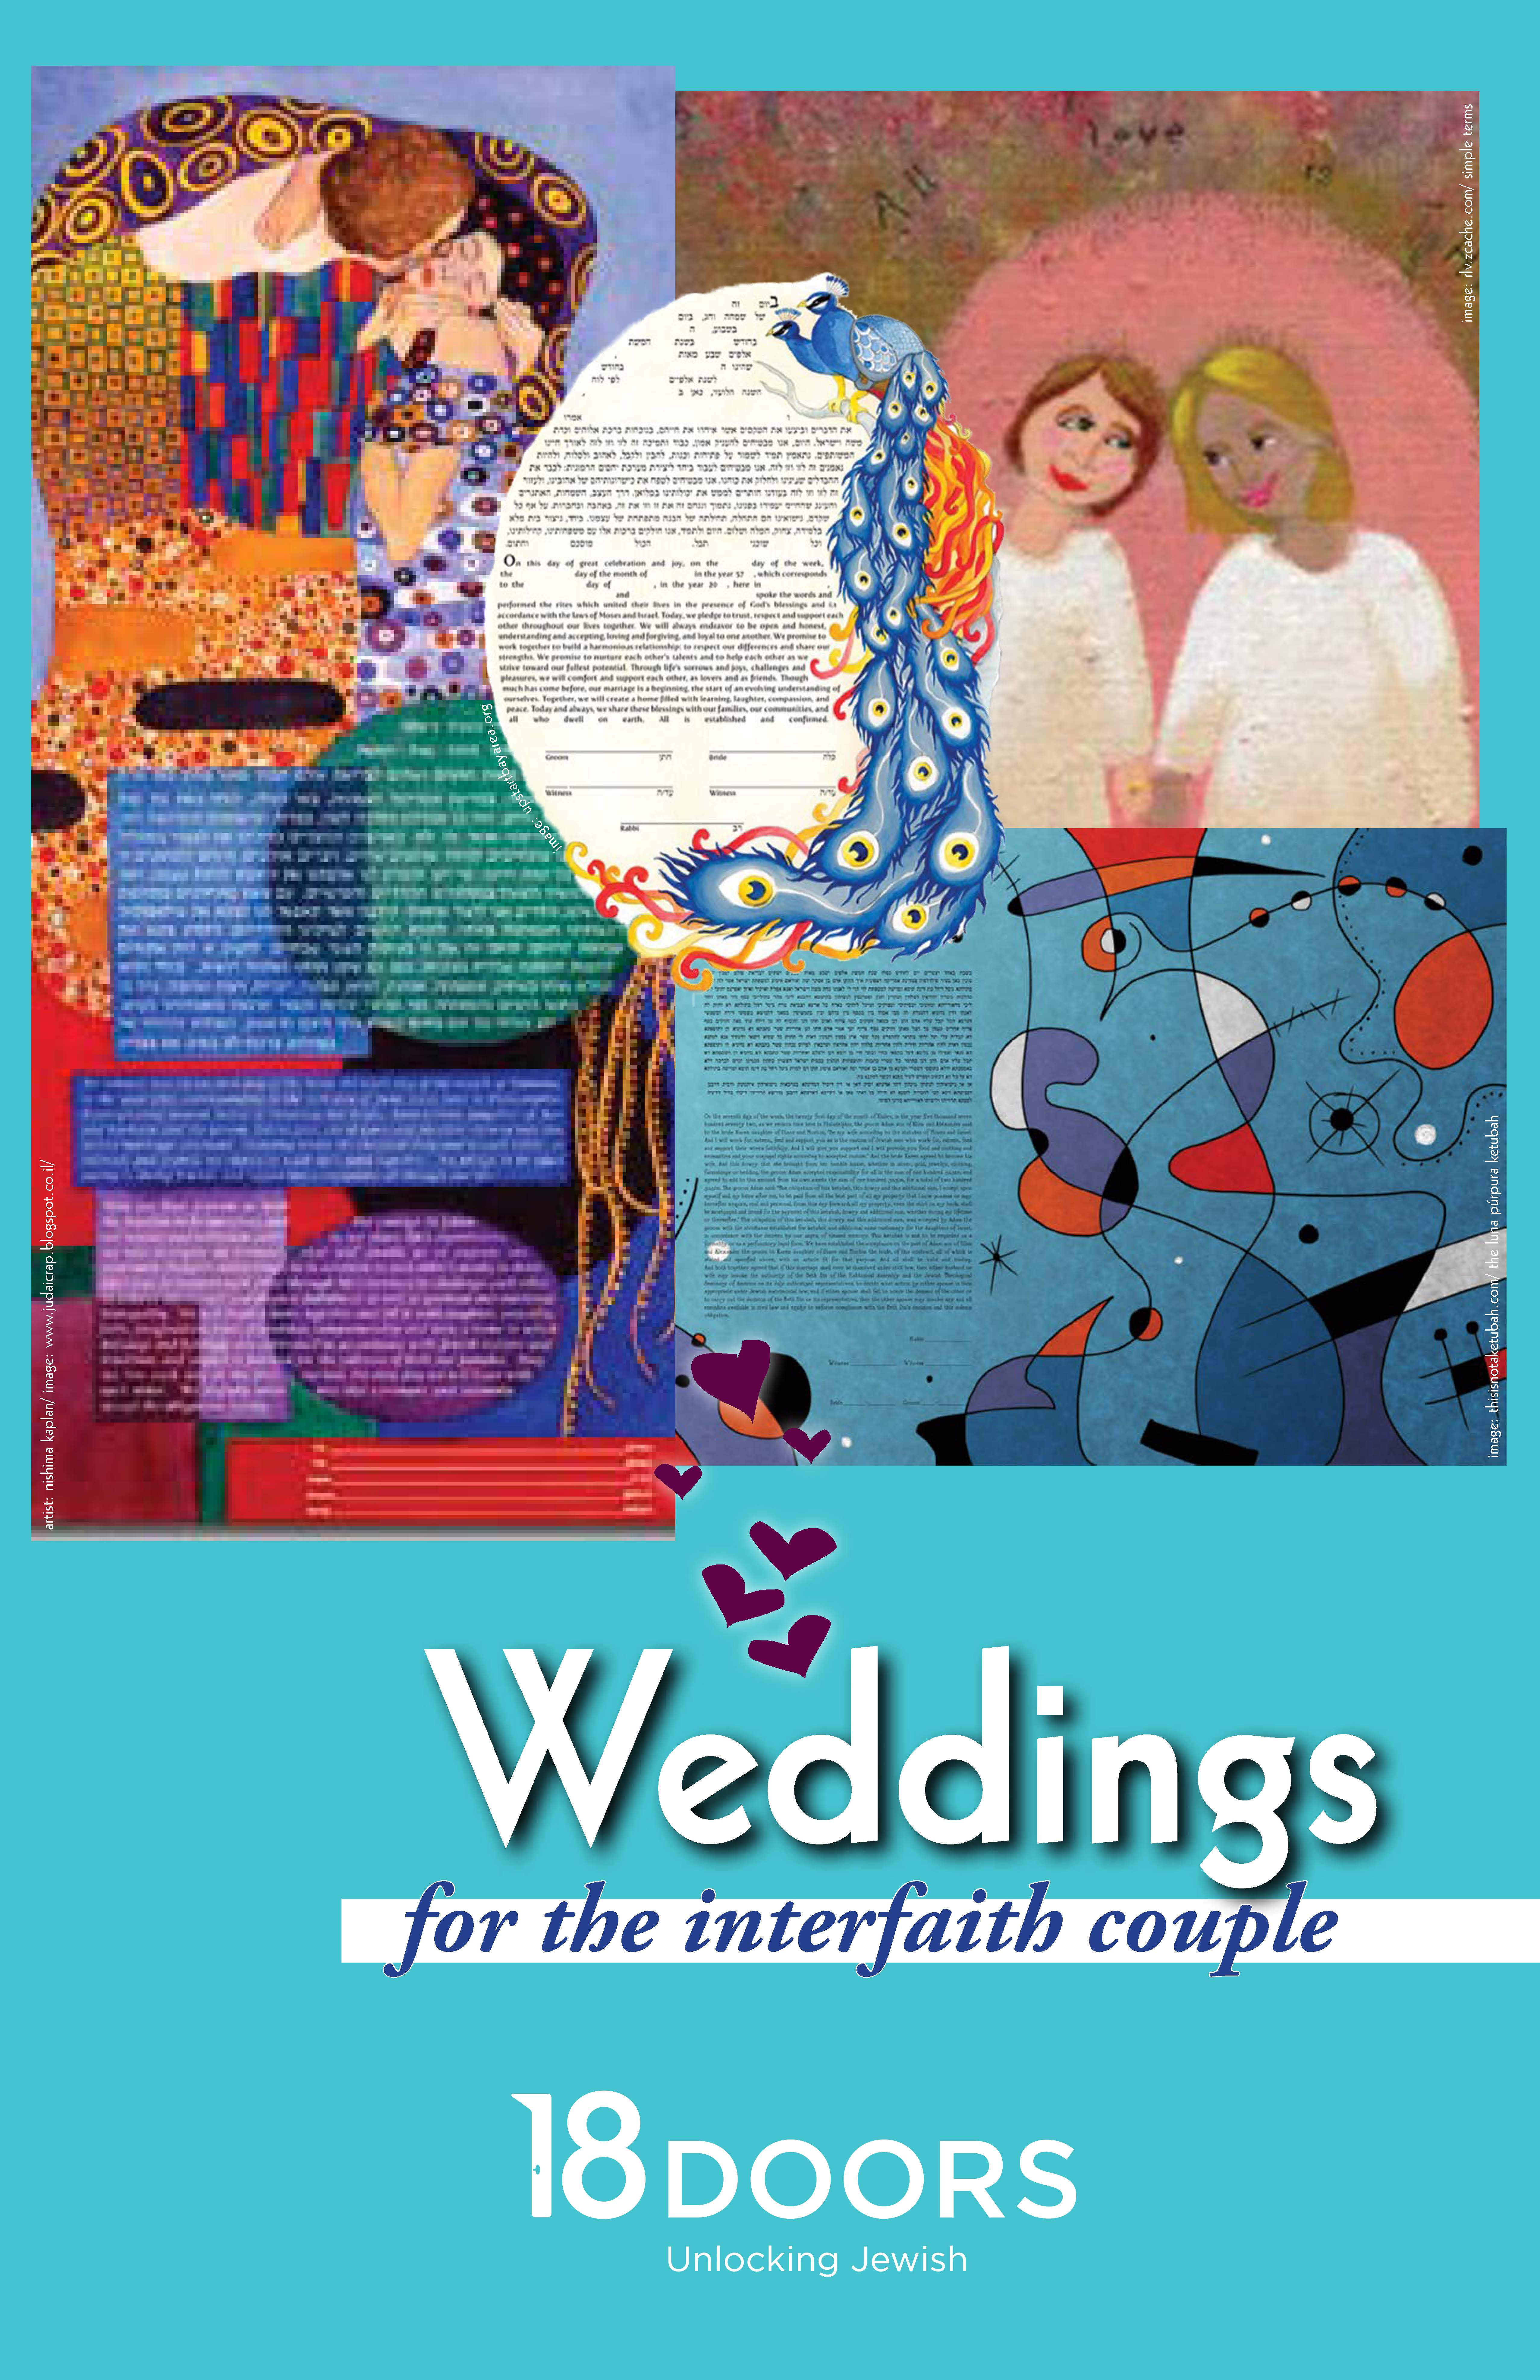 Weddings for the Interfaith Couple booklet